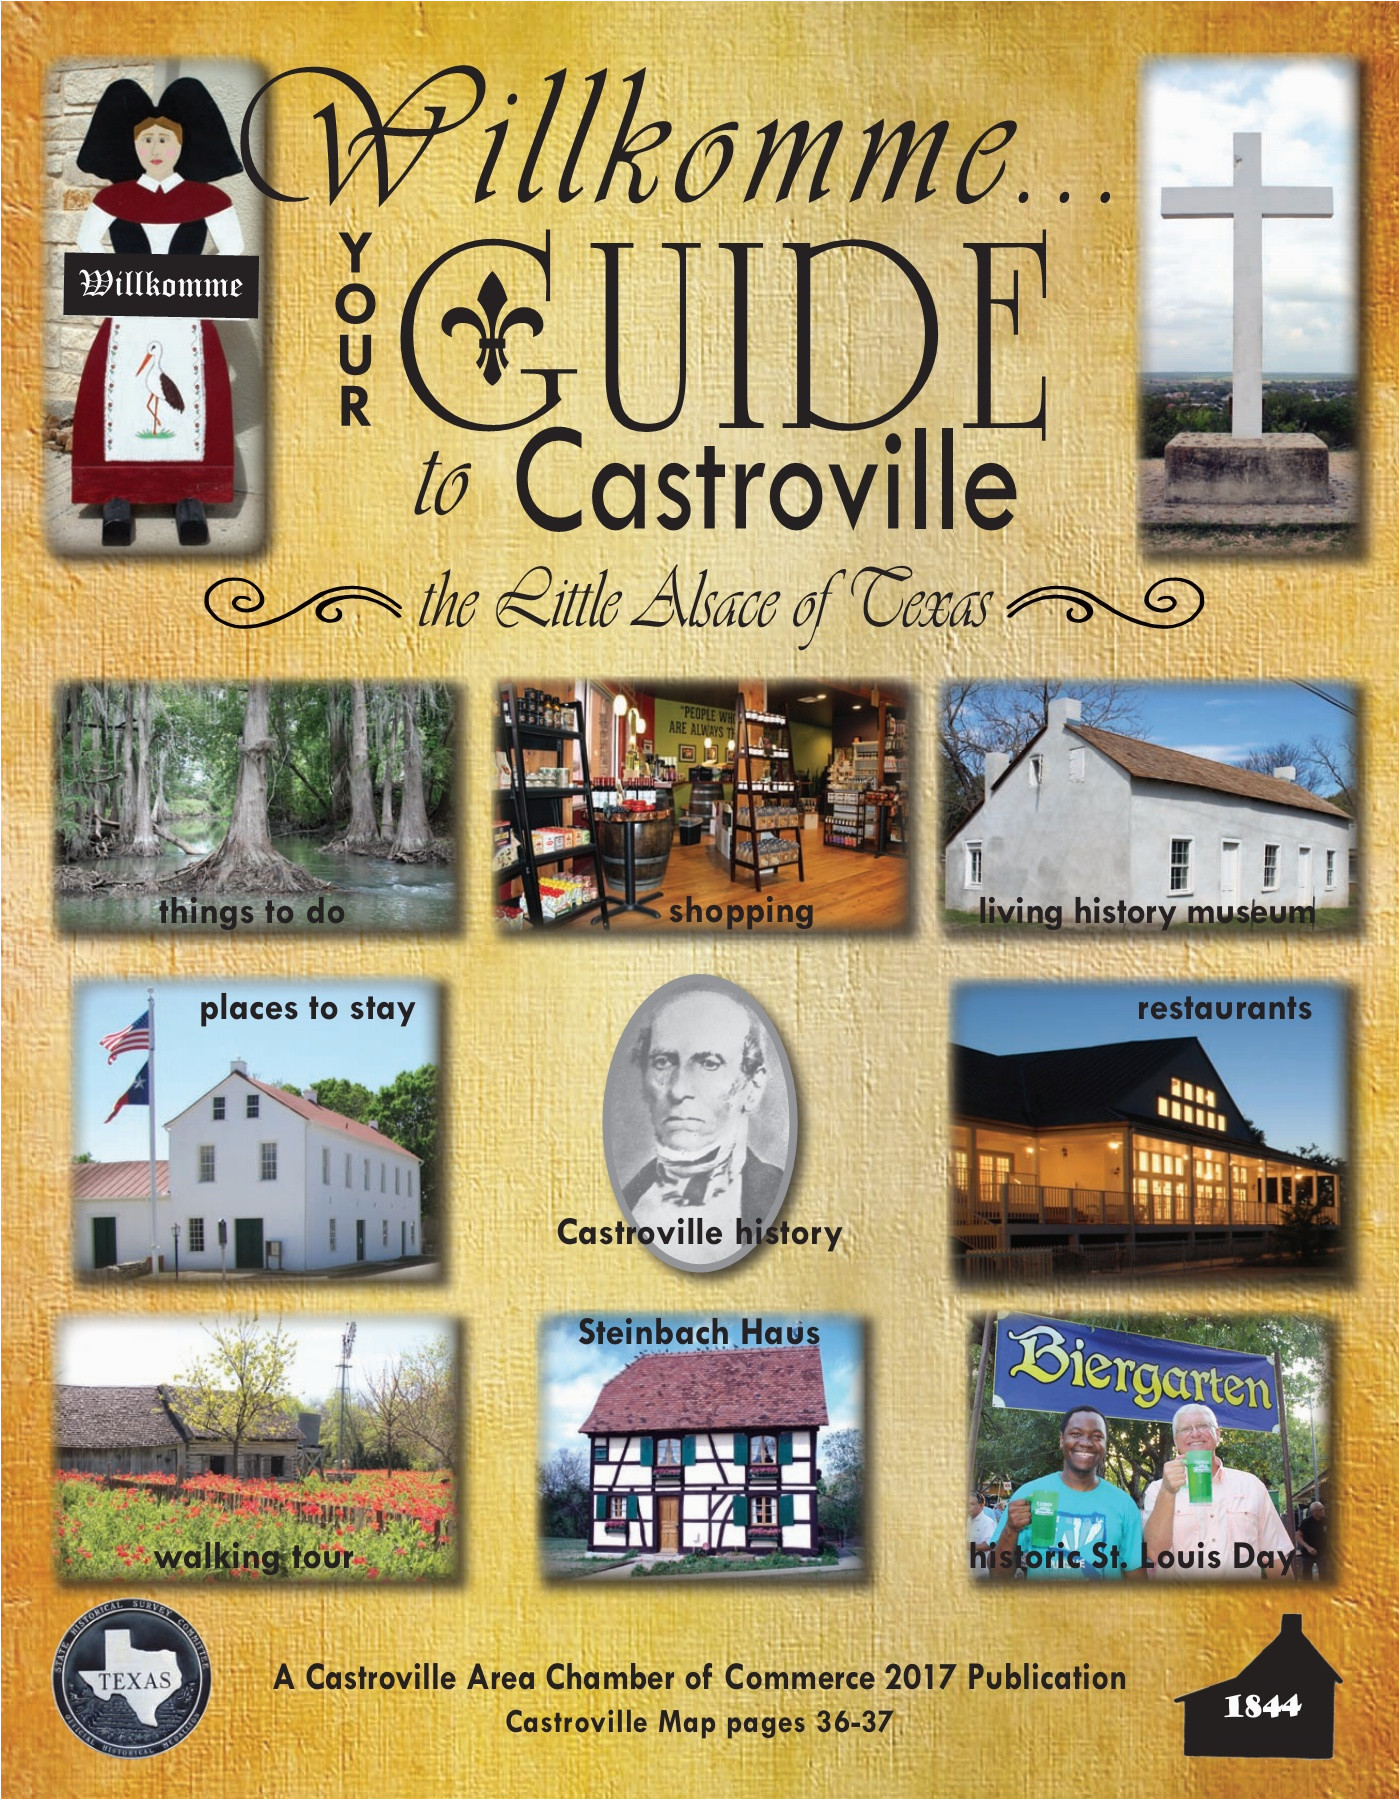 castroville visiters guide 2017 website edited pages 1 50 text